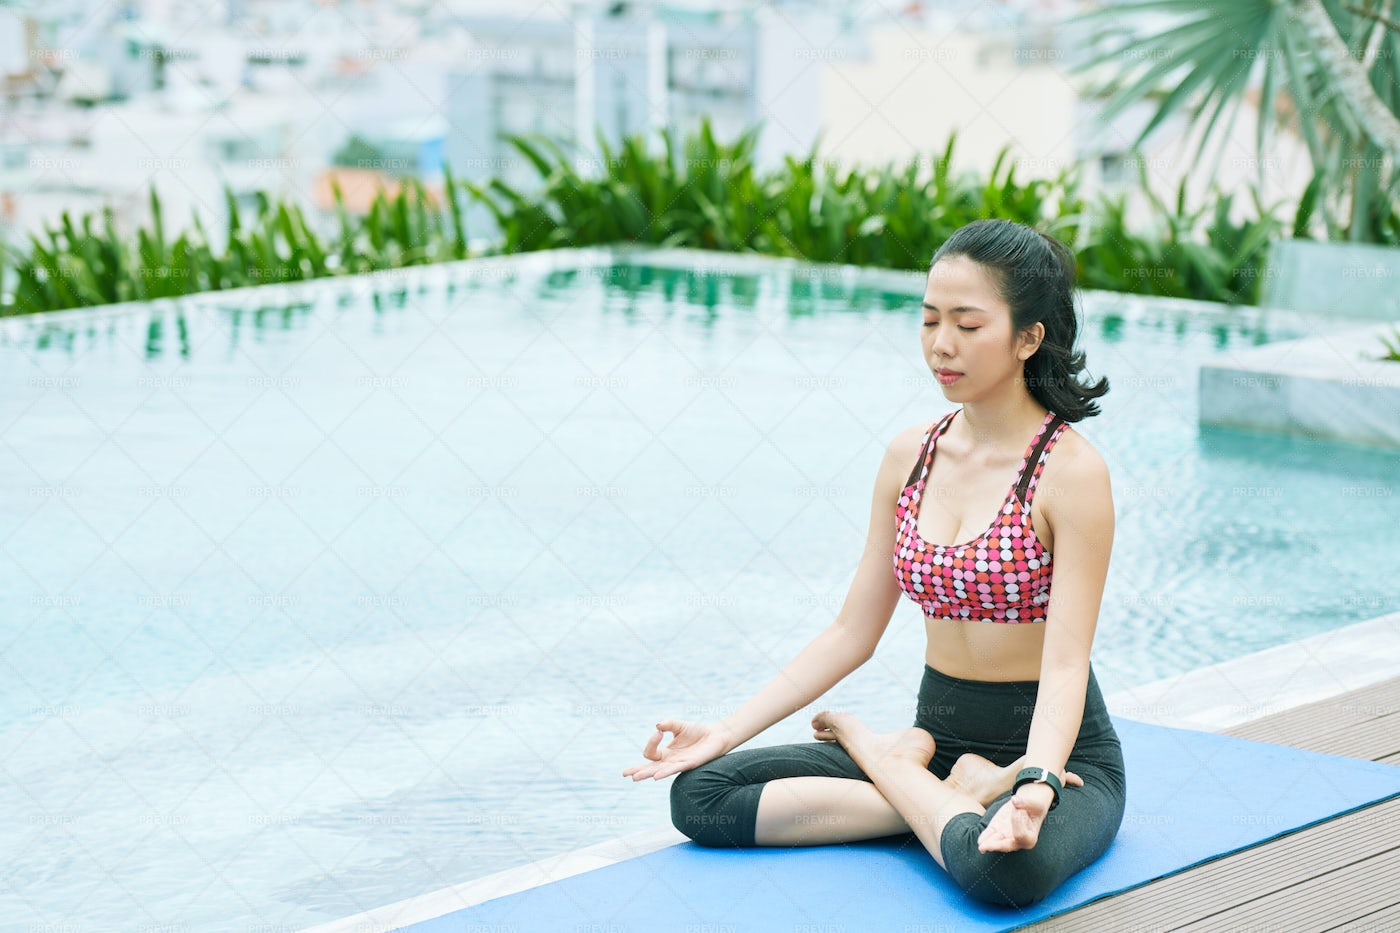 Woman Sitting In Lotus Position: Stock Photos